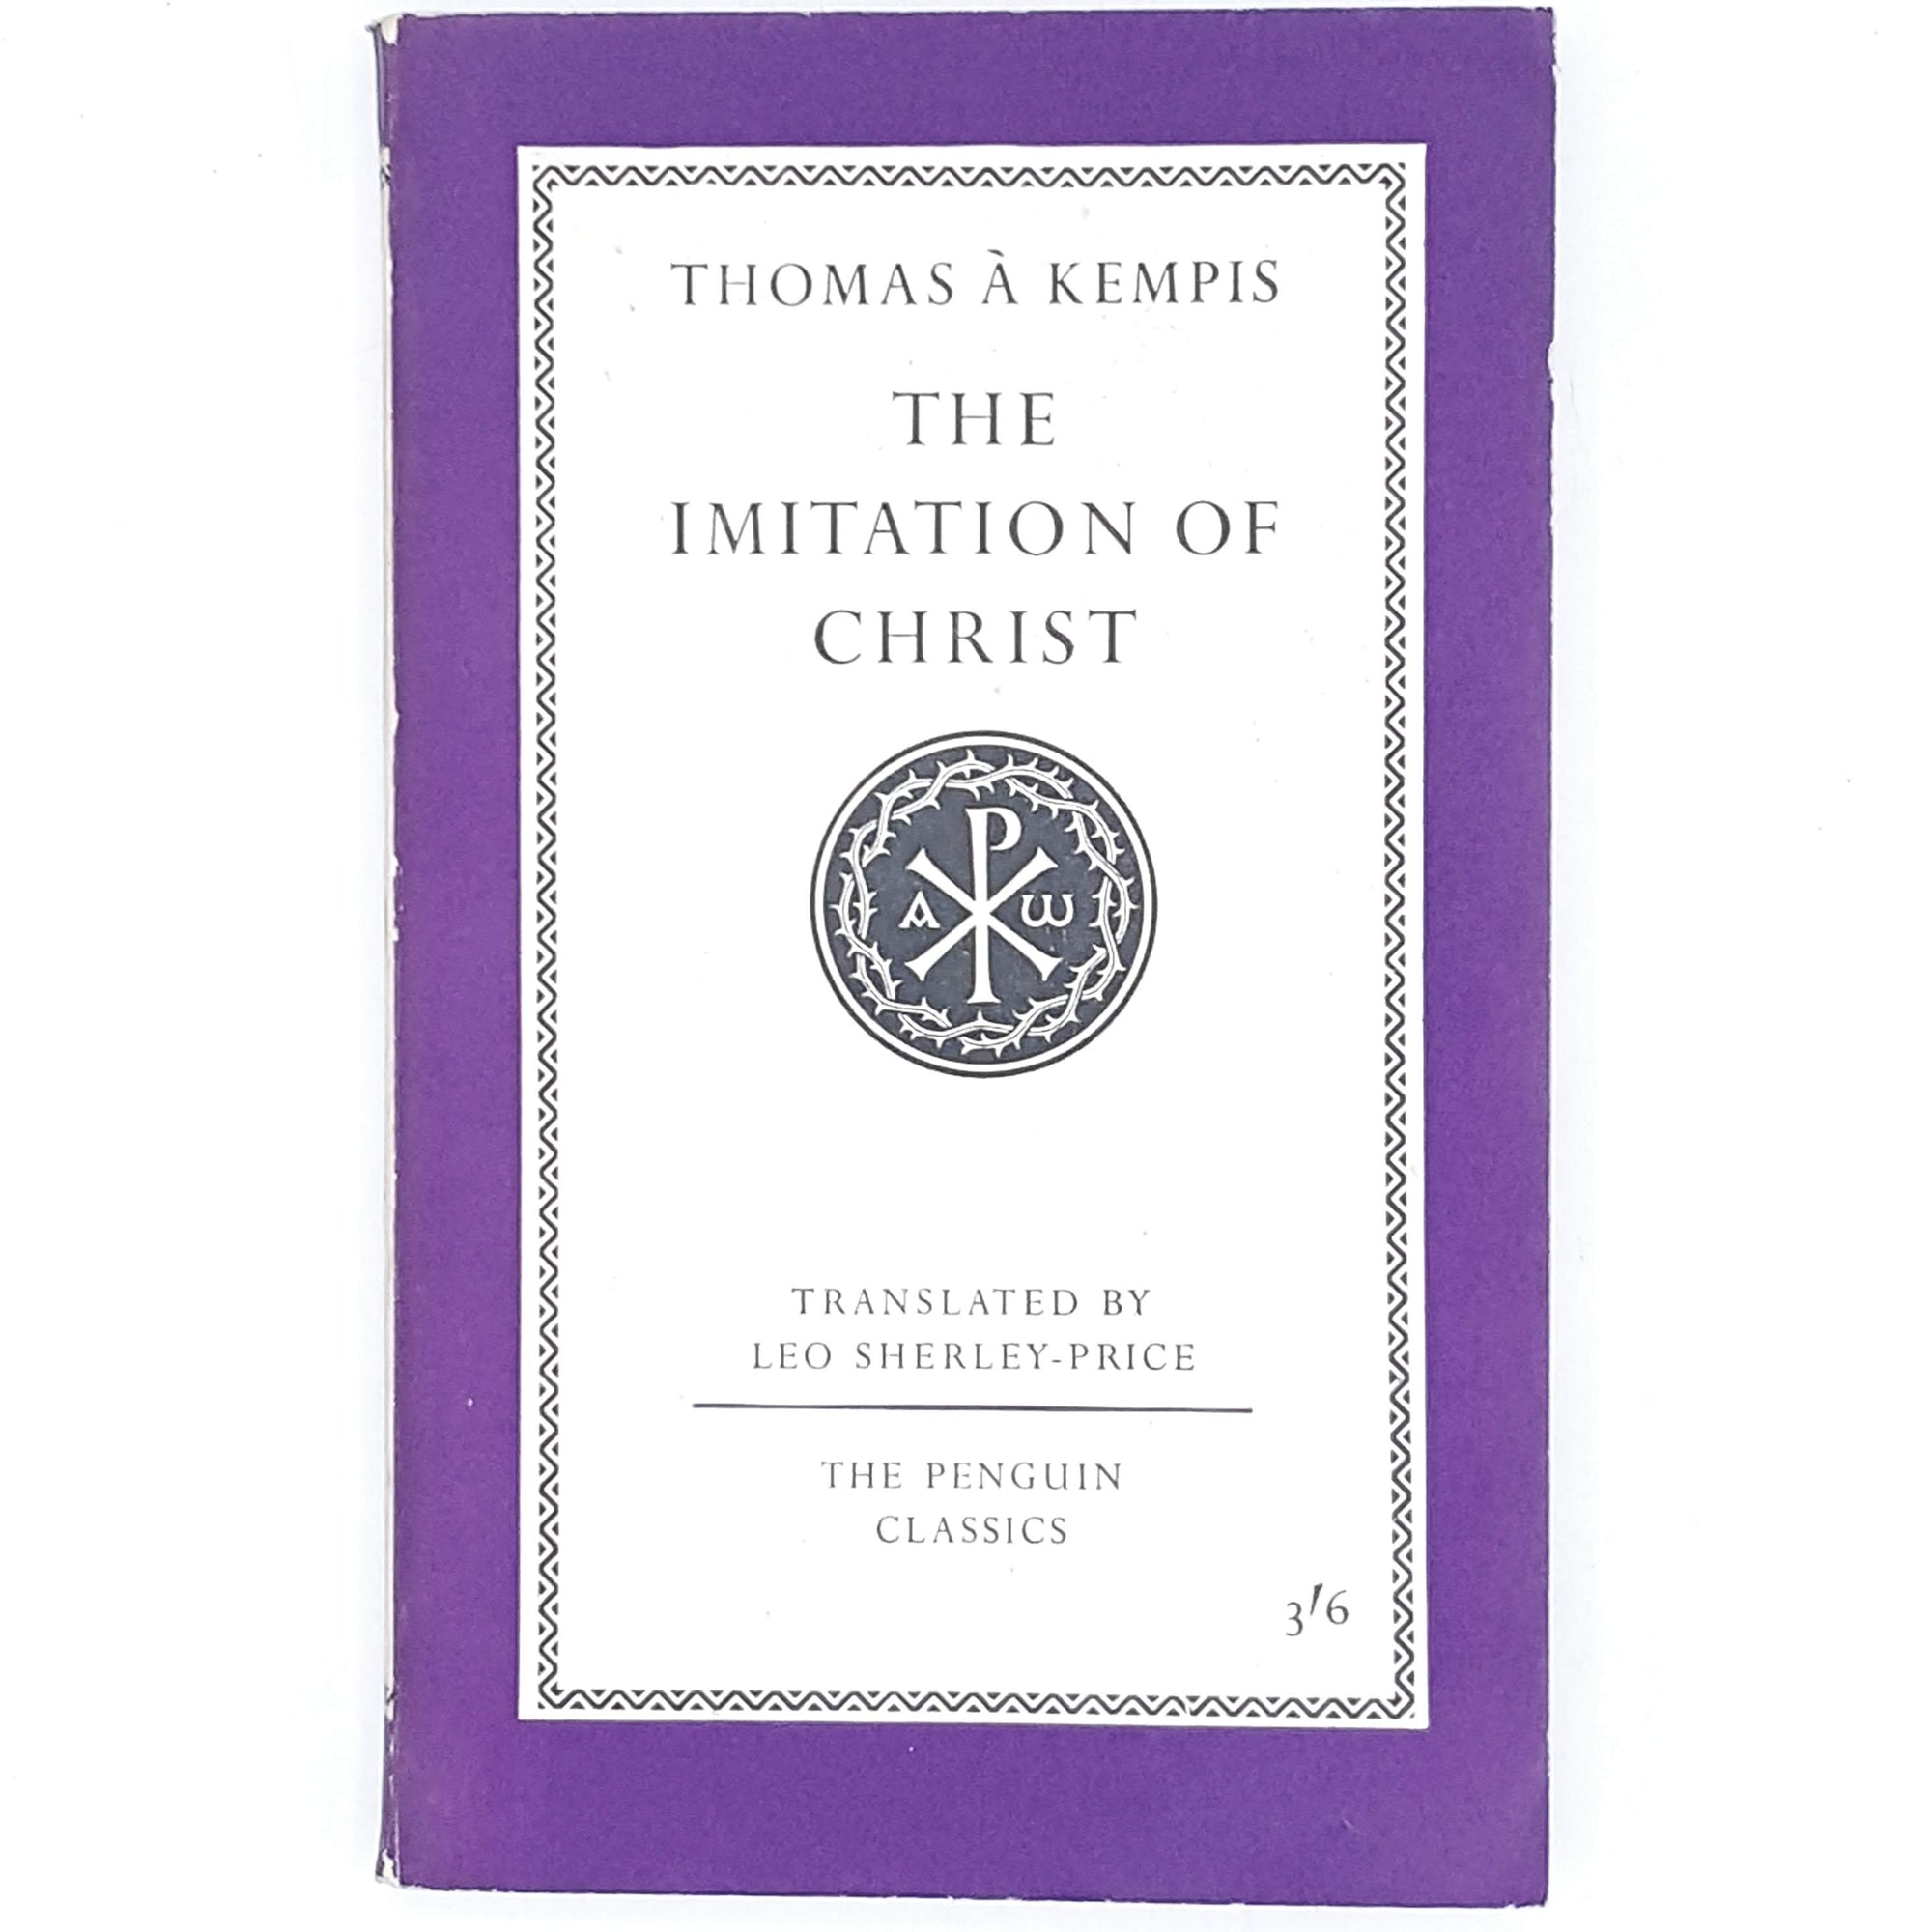 Vintage Penguin Thomas à Kempis's The Imitation of Christ 1959